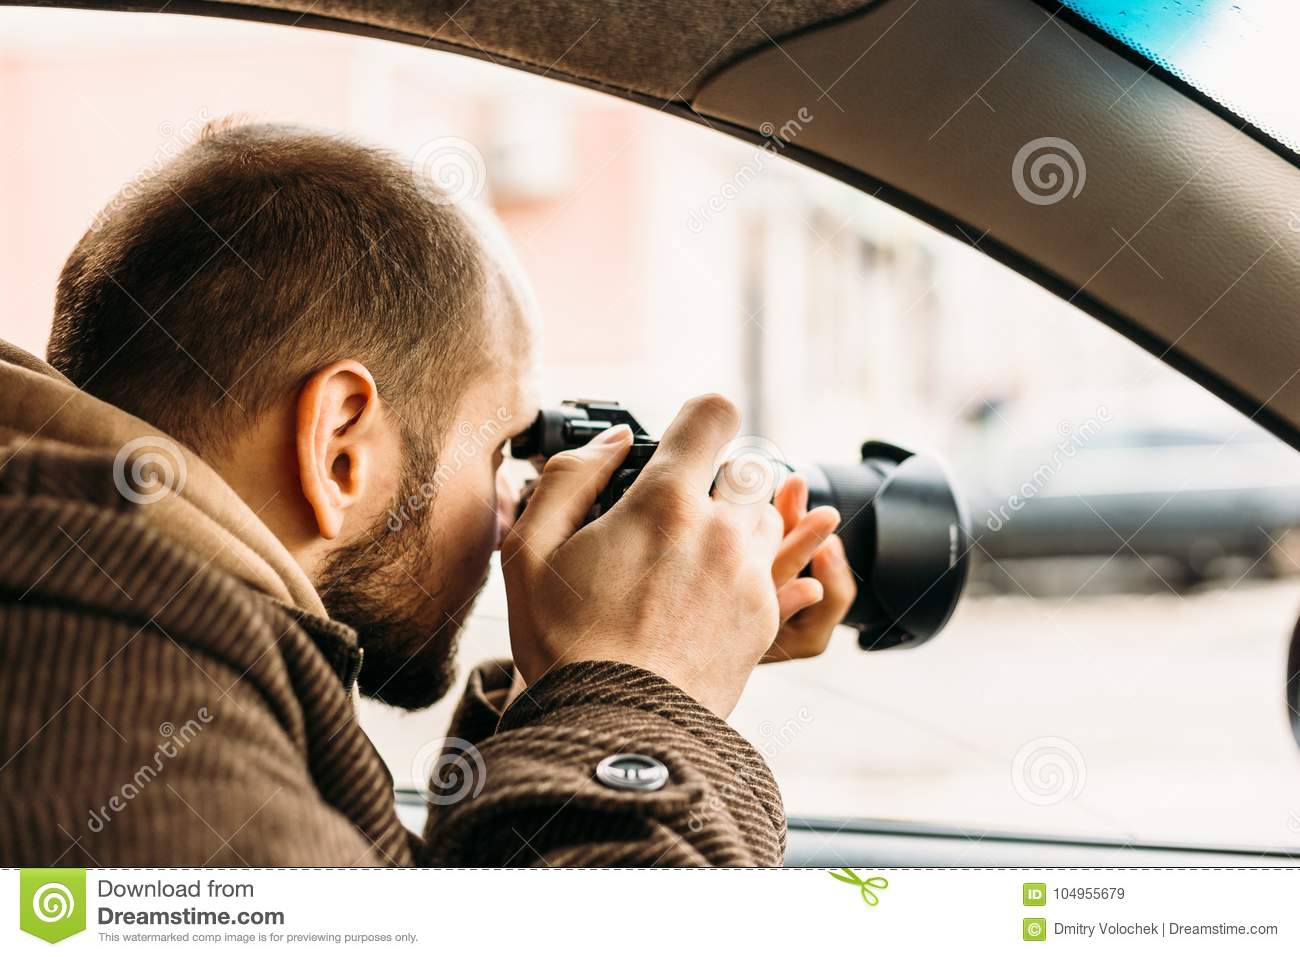 Private detective or reporter or paparazzi sitting in car and taking photo with professional camera